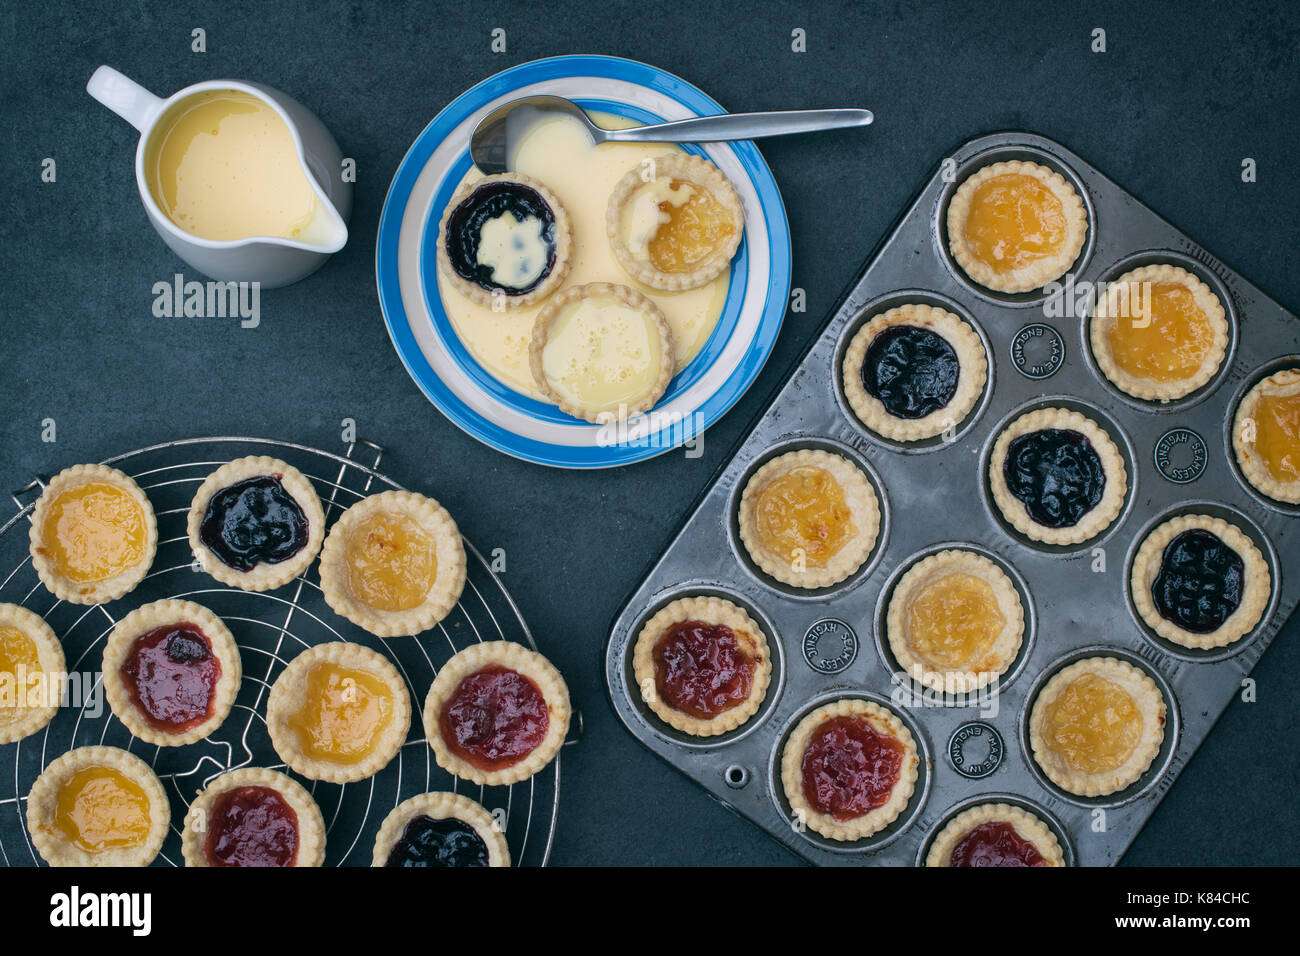 Cooked homemade jam tarts on a plate with custard next to a baking tray and a vintage circular wire rack - Stock Image